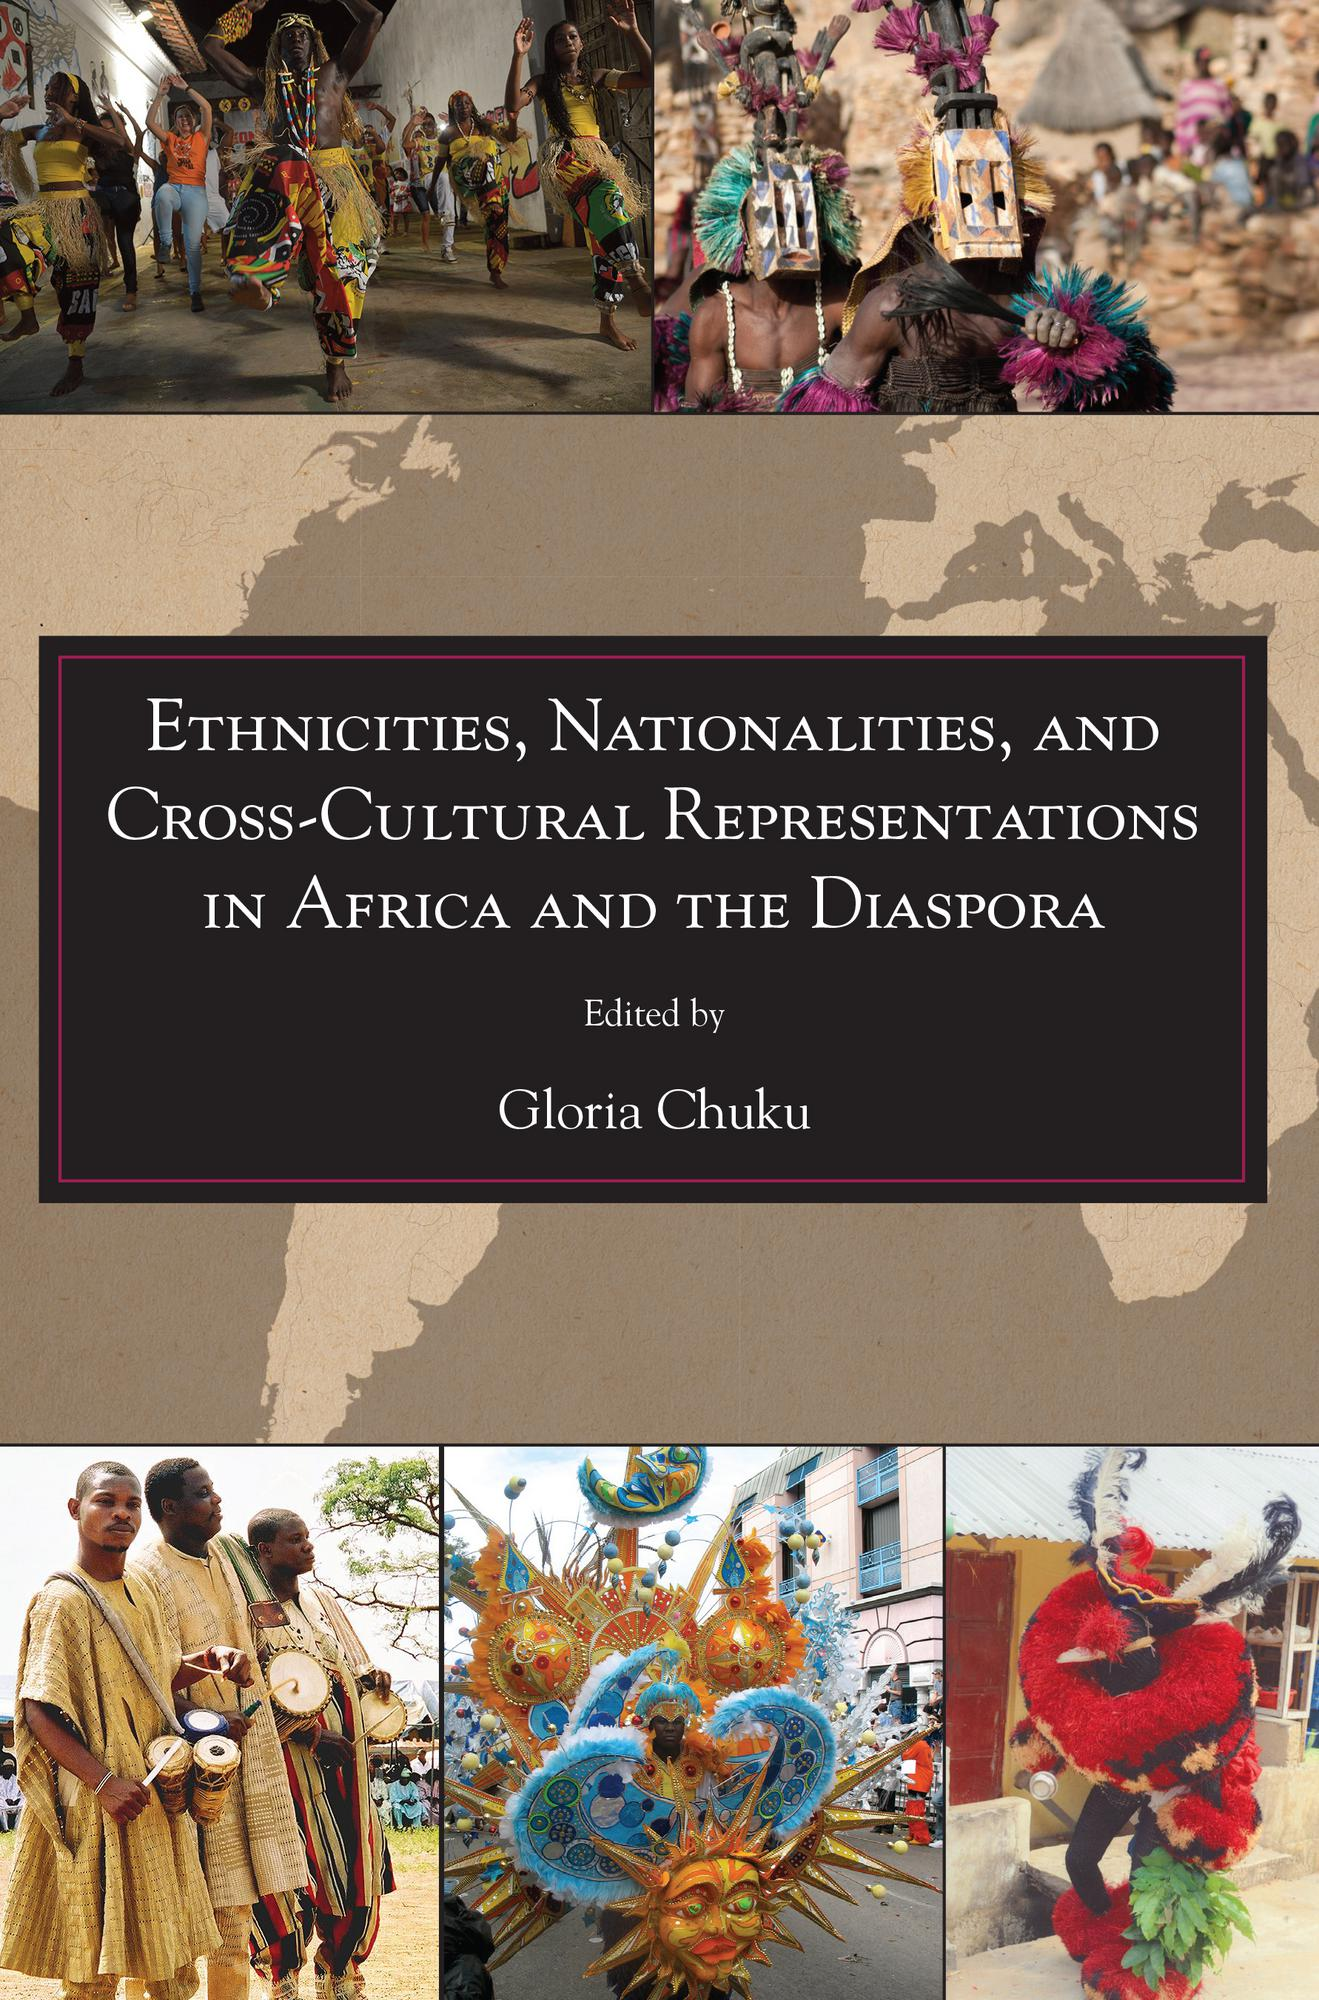 Ethnicities, Nationalities, and Cross-Cultural Representations in Africa and the Diaspora